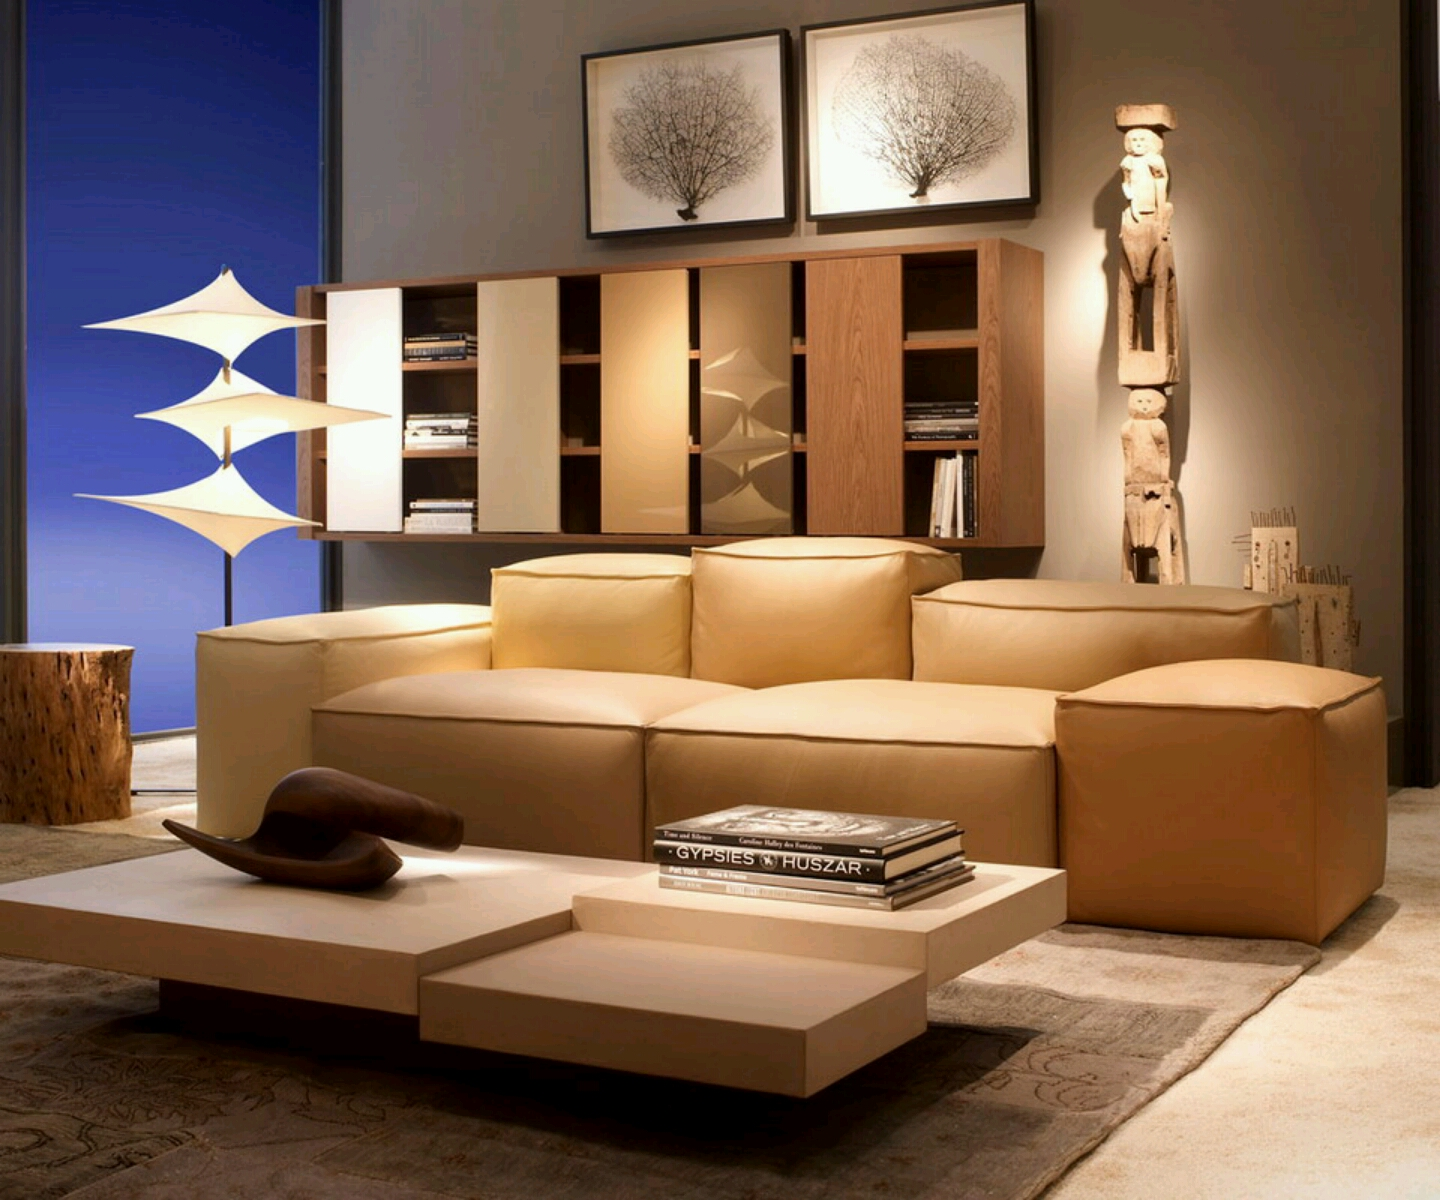 Beautiful modern sofa furniture designs An Interior Design : Beautifulmodernsofafurnituredesigns2 from ourpicturewindow.blogspot.com size 1440 x 1200 jpeg 1007kB